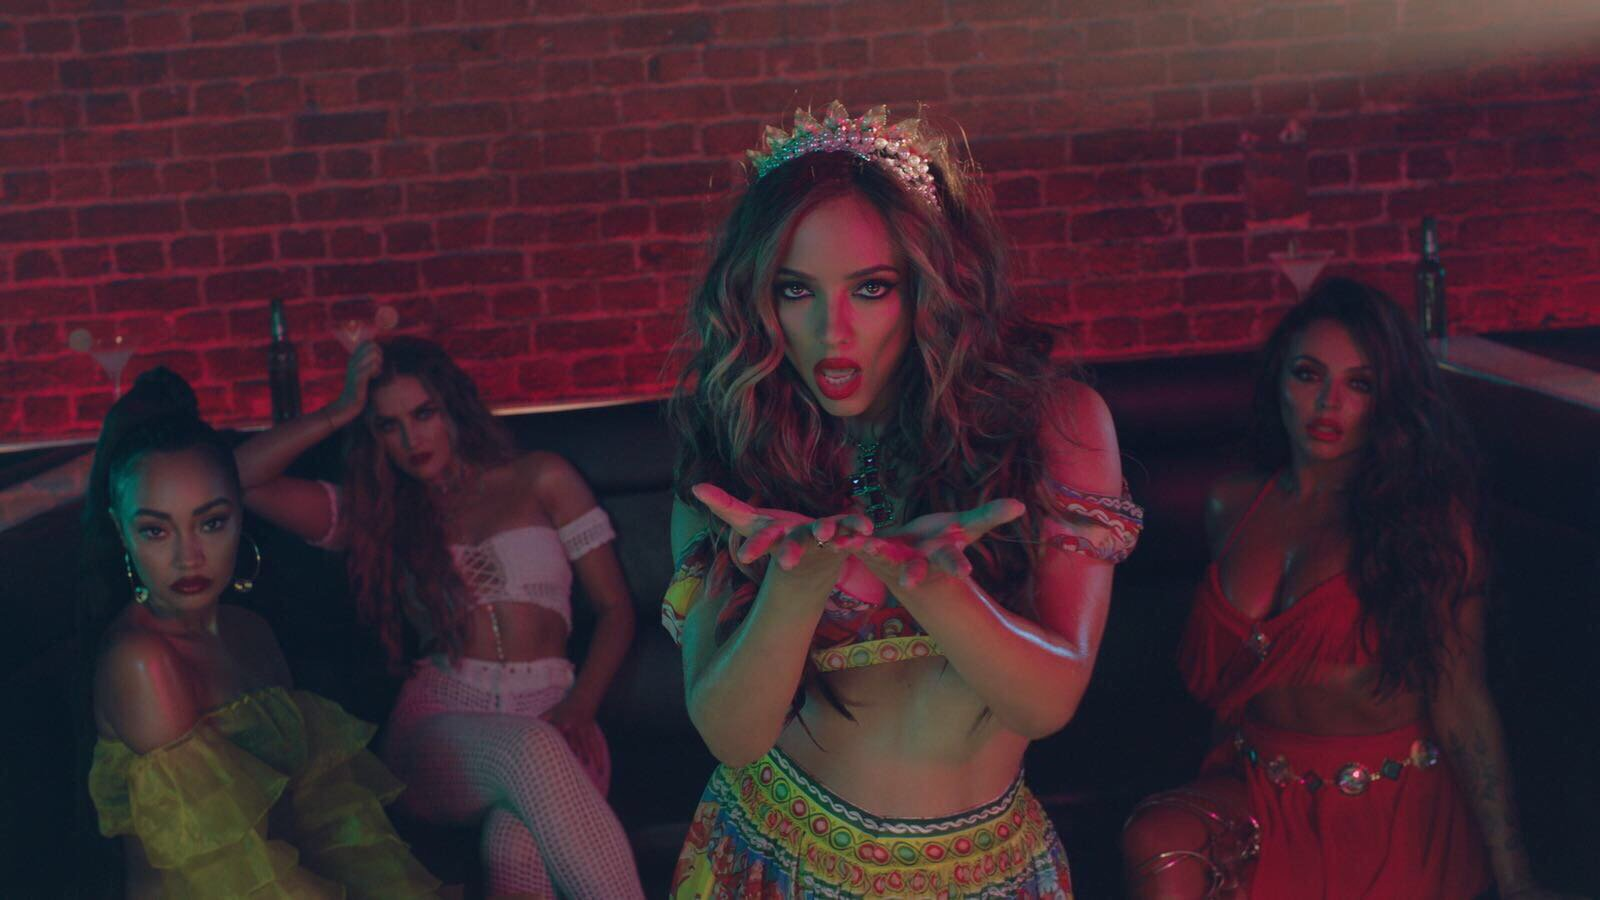 What are you lot most excited to see in the #ReggaetonLentoRemixVideo? ������ Let's hear it!! ���� LM HQ x https://t.co/gqSynCHekY